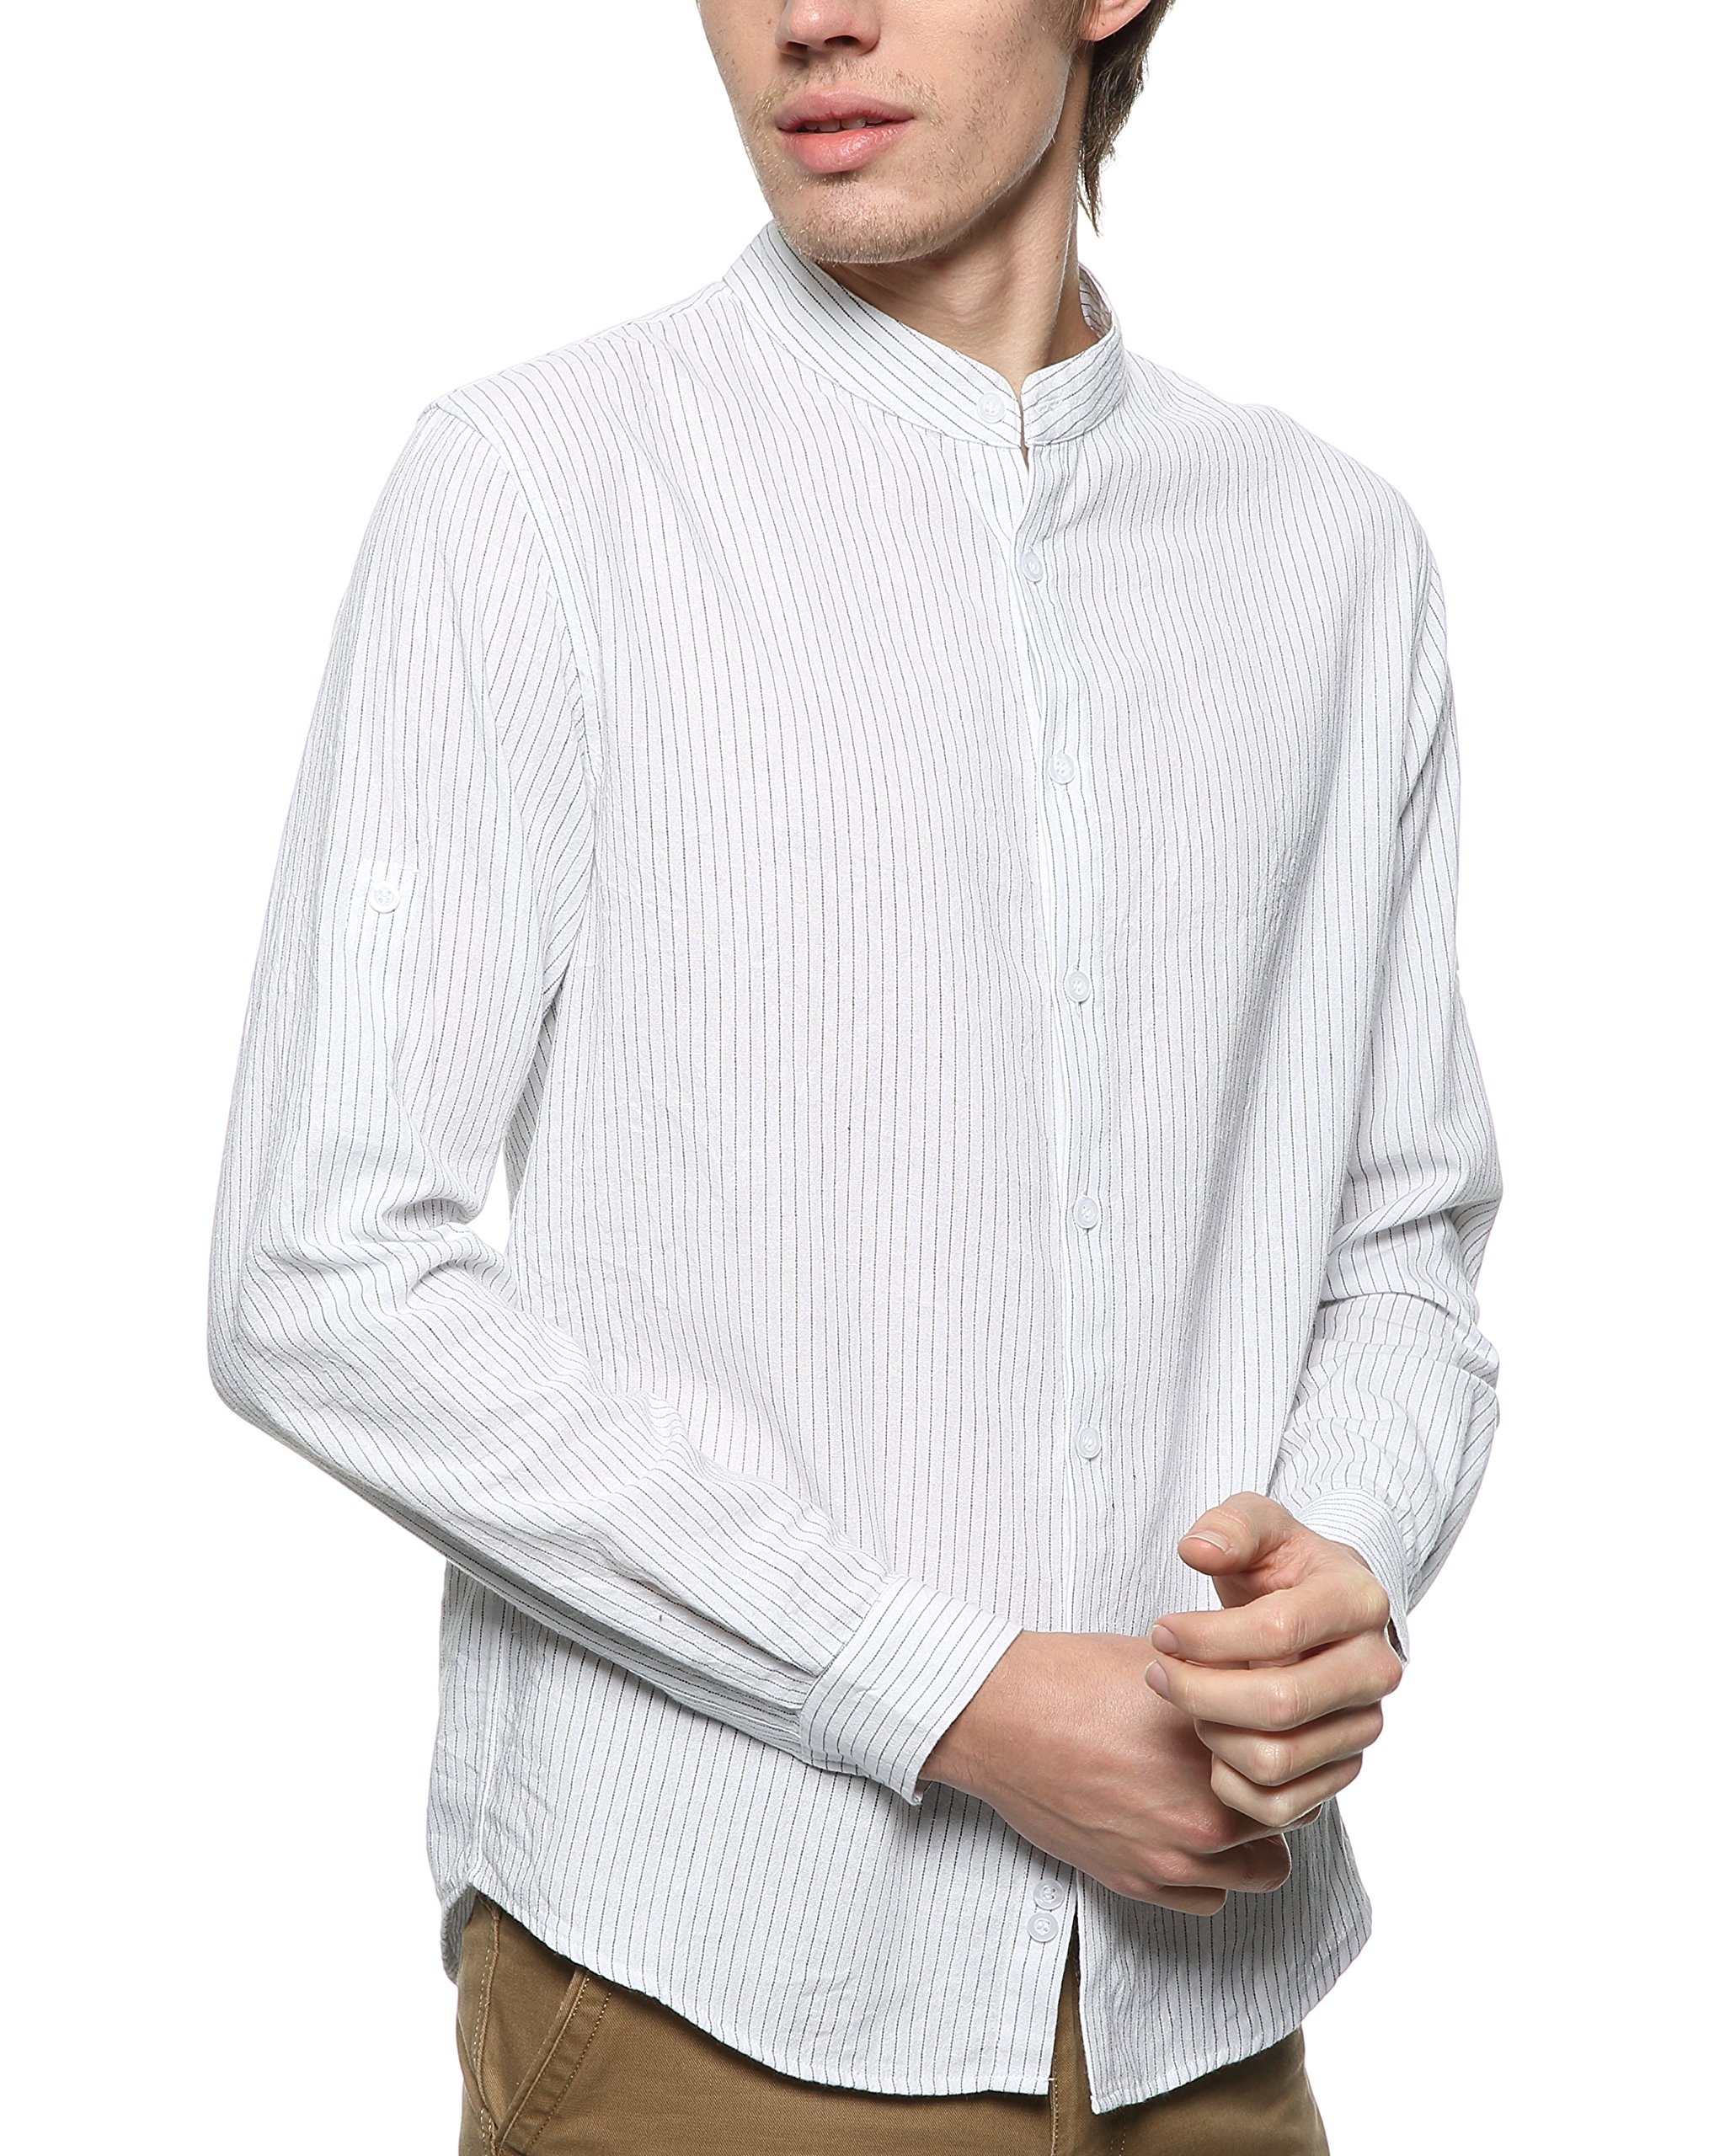 BYLUNTA Men Regular Fit Band Collar 100% Cotton Pinstripe Long Sleeve Daily Office Casual Business Shirt (Large,White)